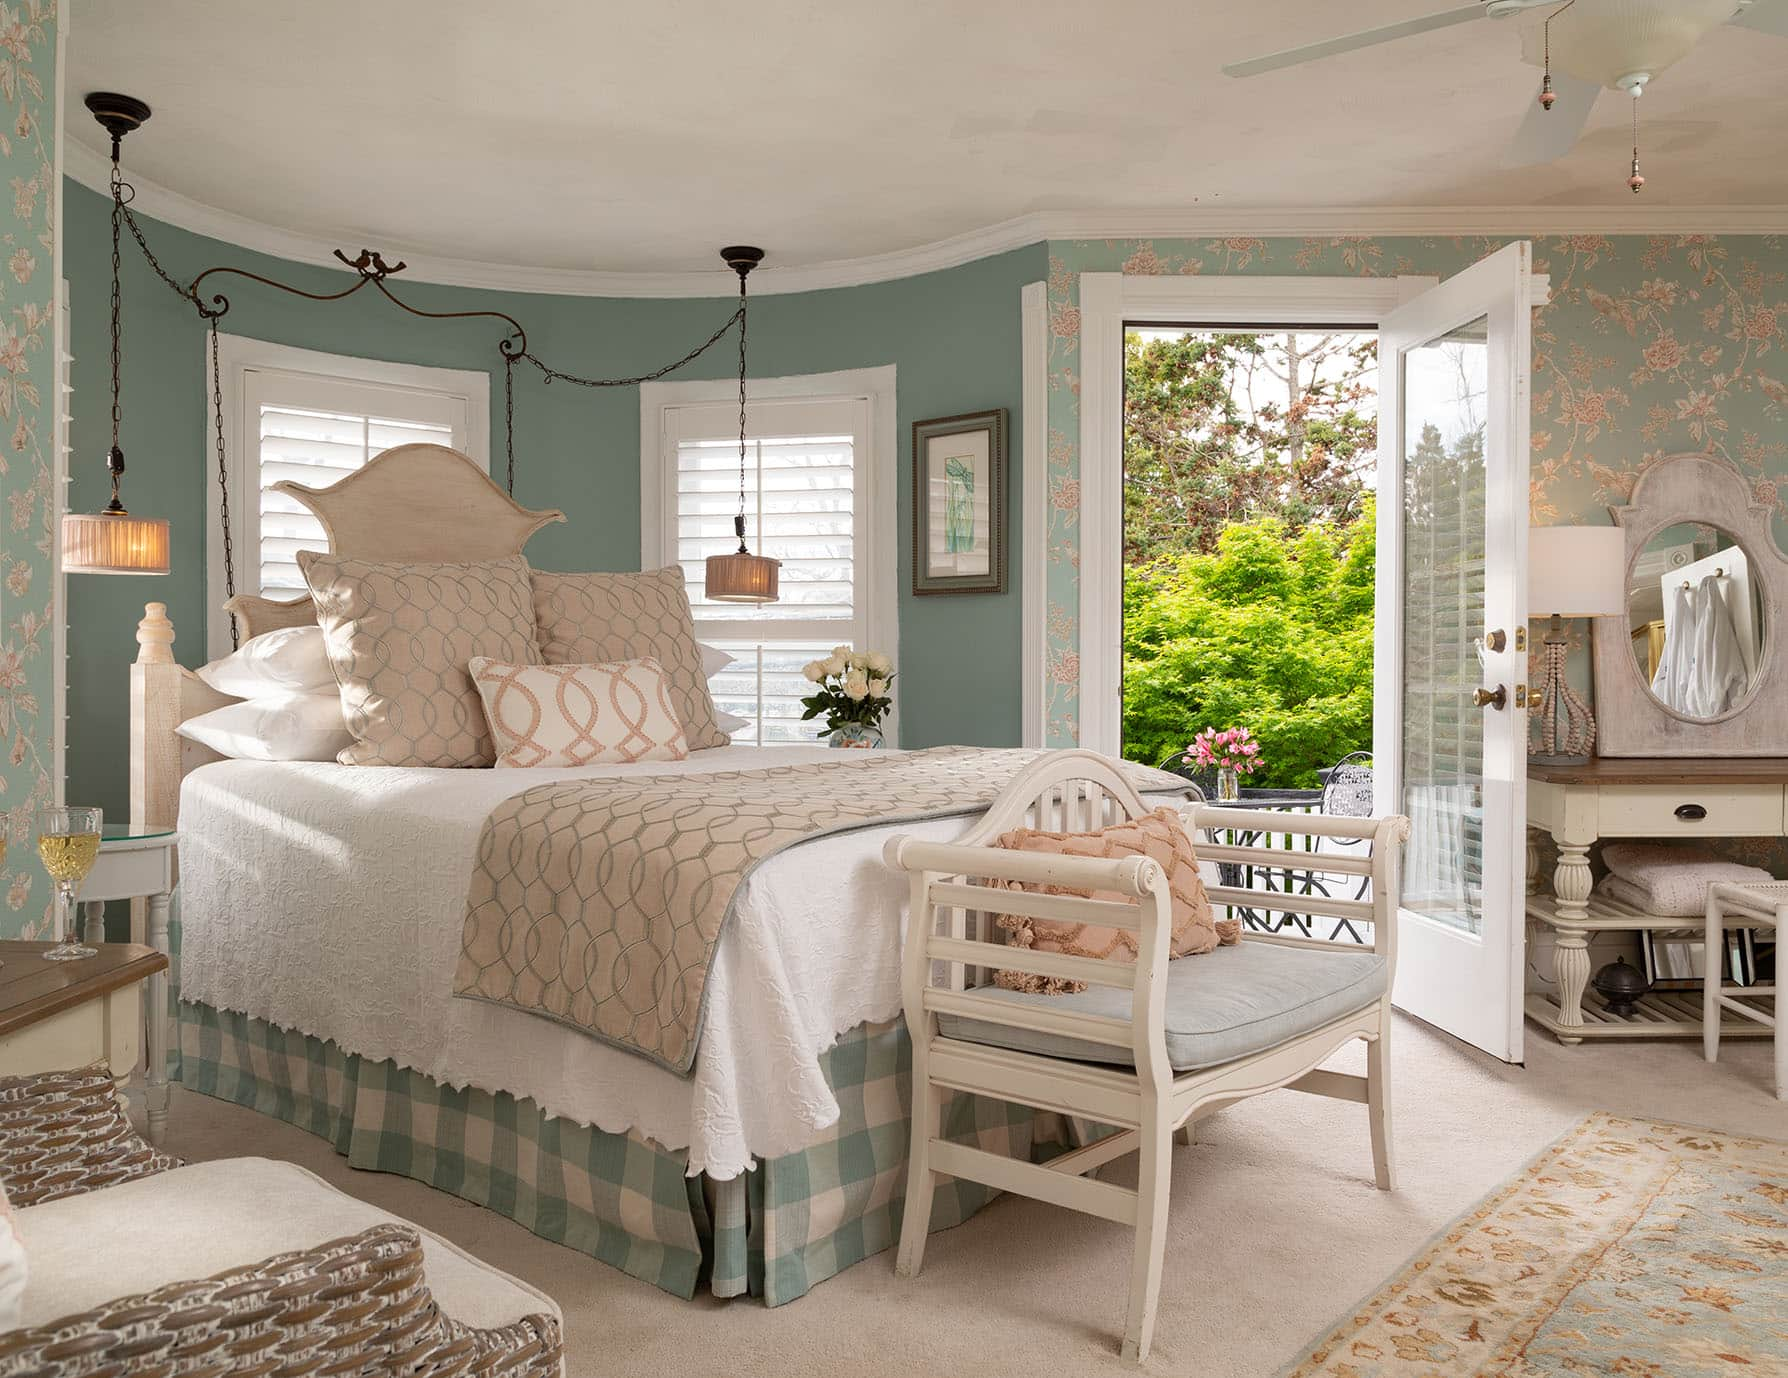 The Best Place to Stay in Outer Banks NC has a Queen Bed and Private Balcony